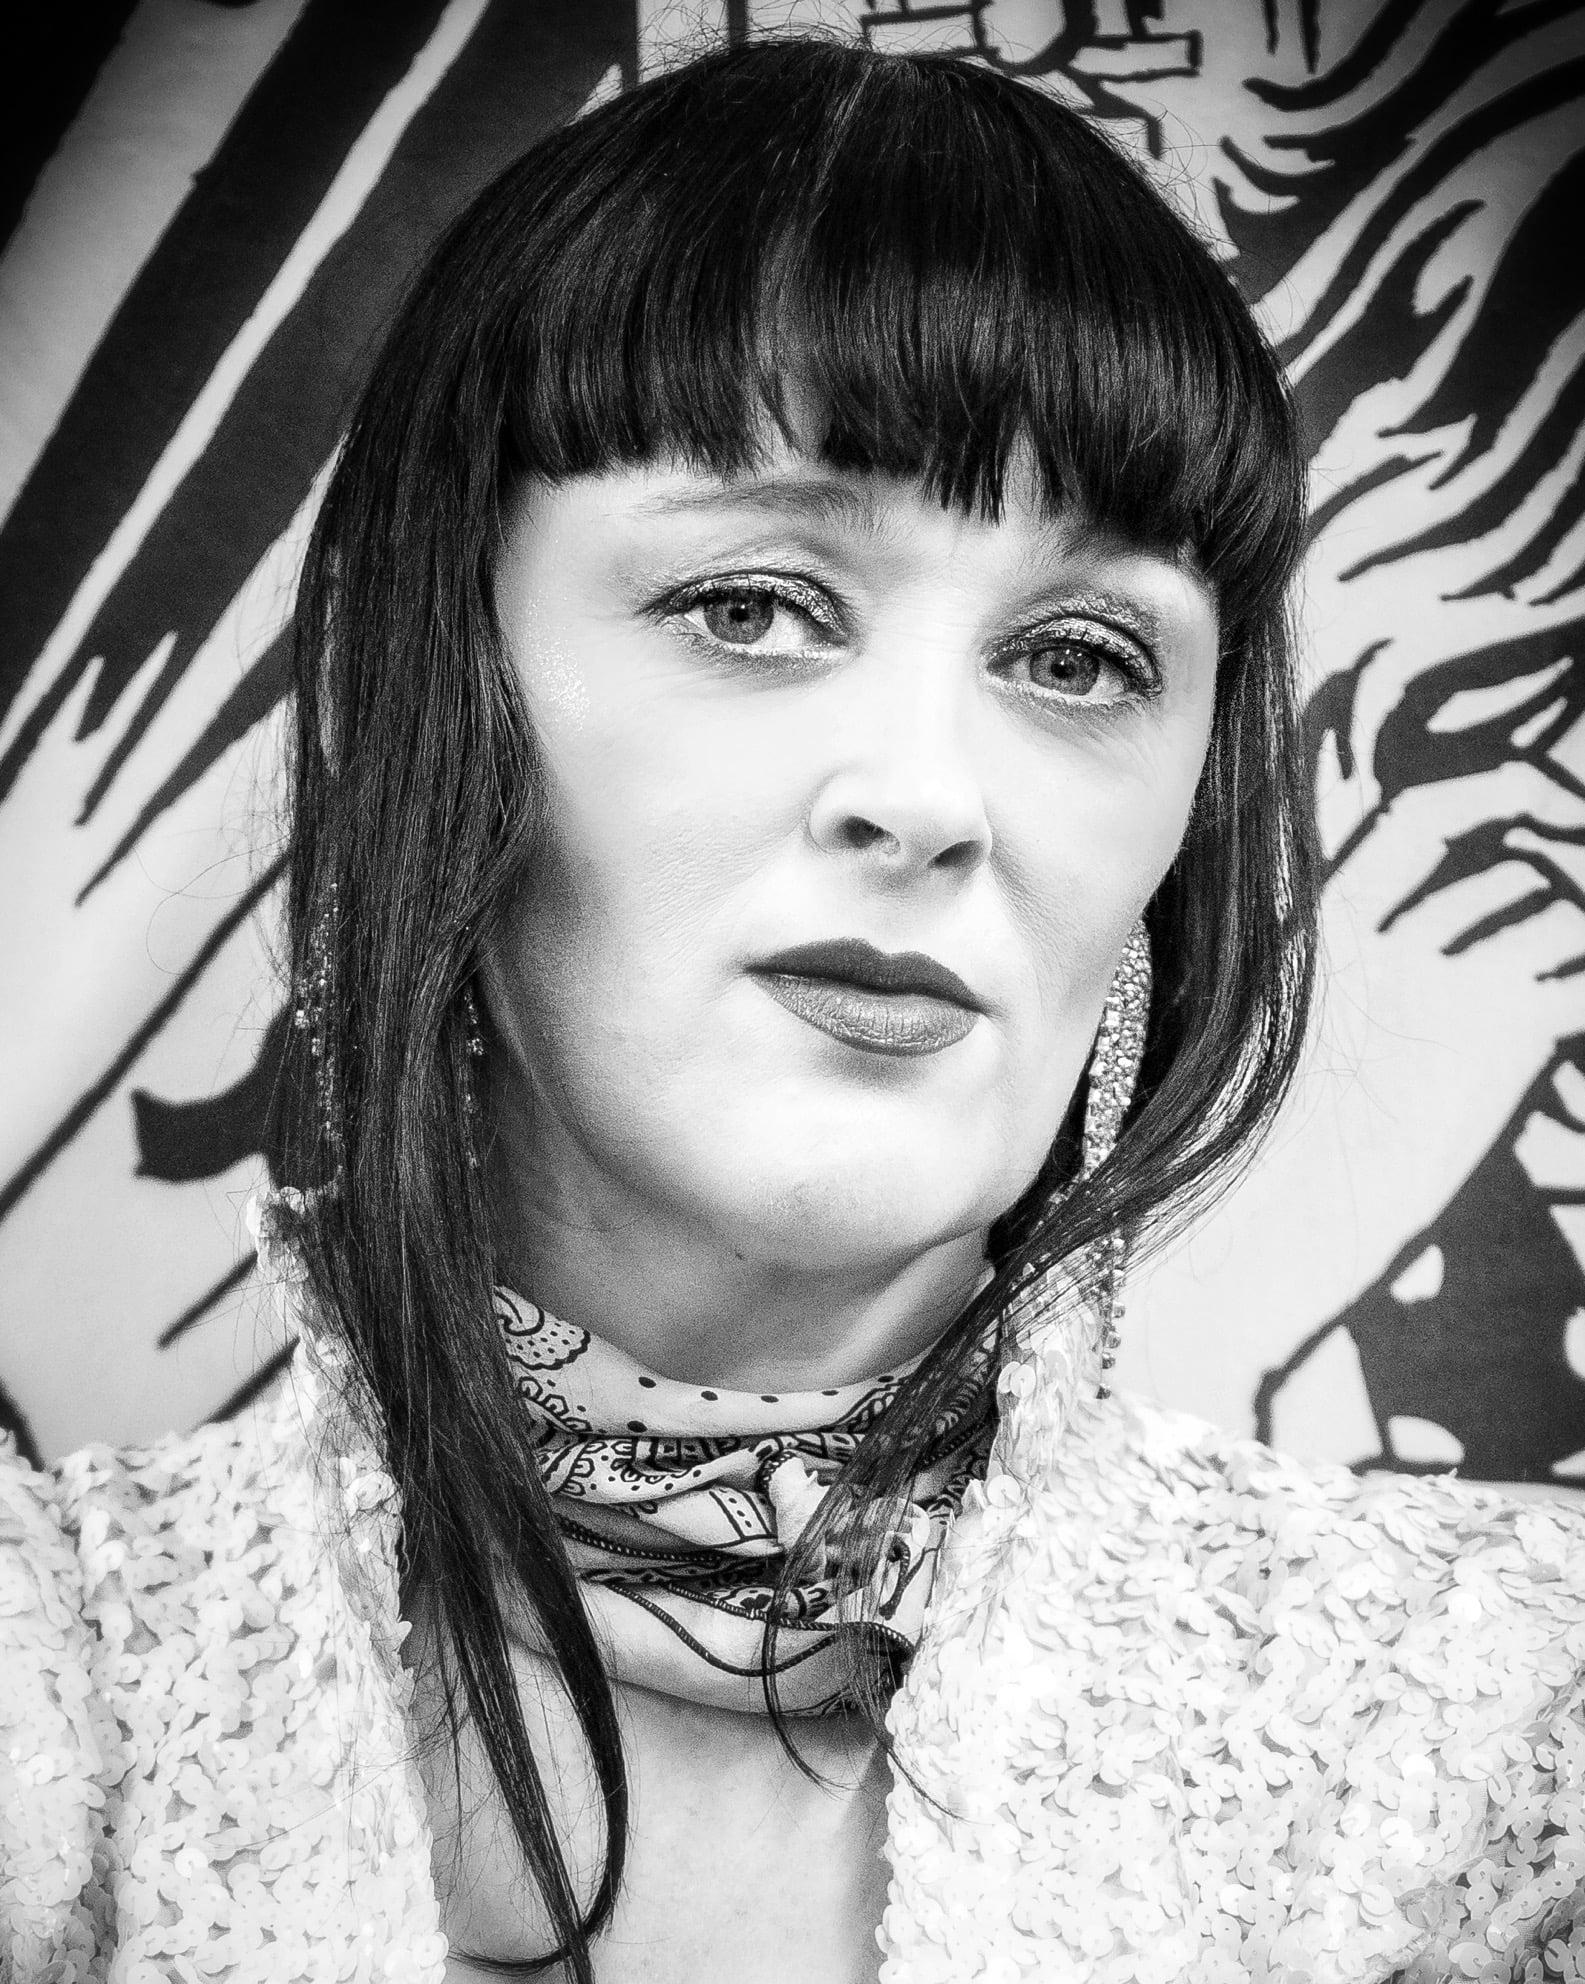 BRONAGH GALLAGHER Photo: Nikki Stix